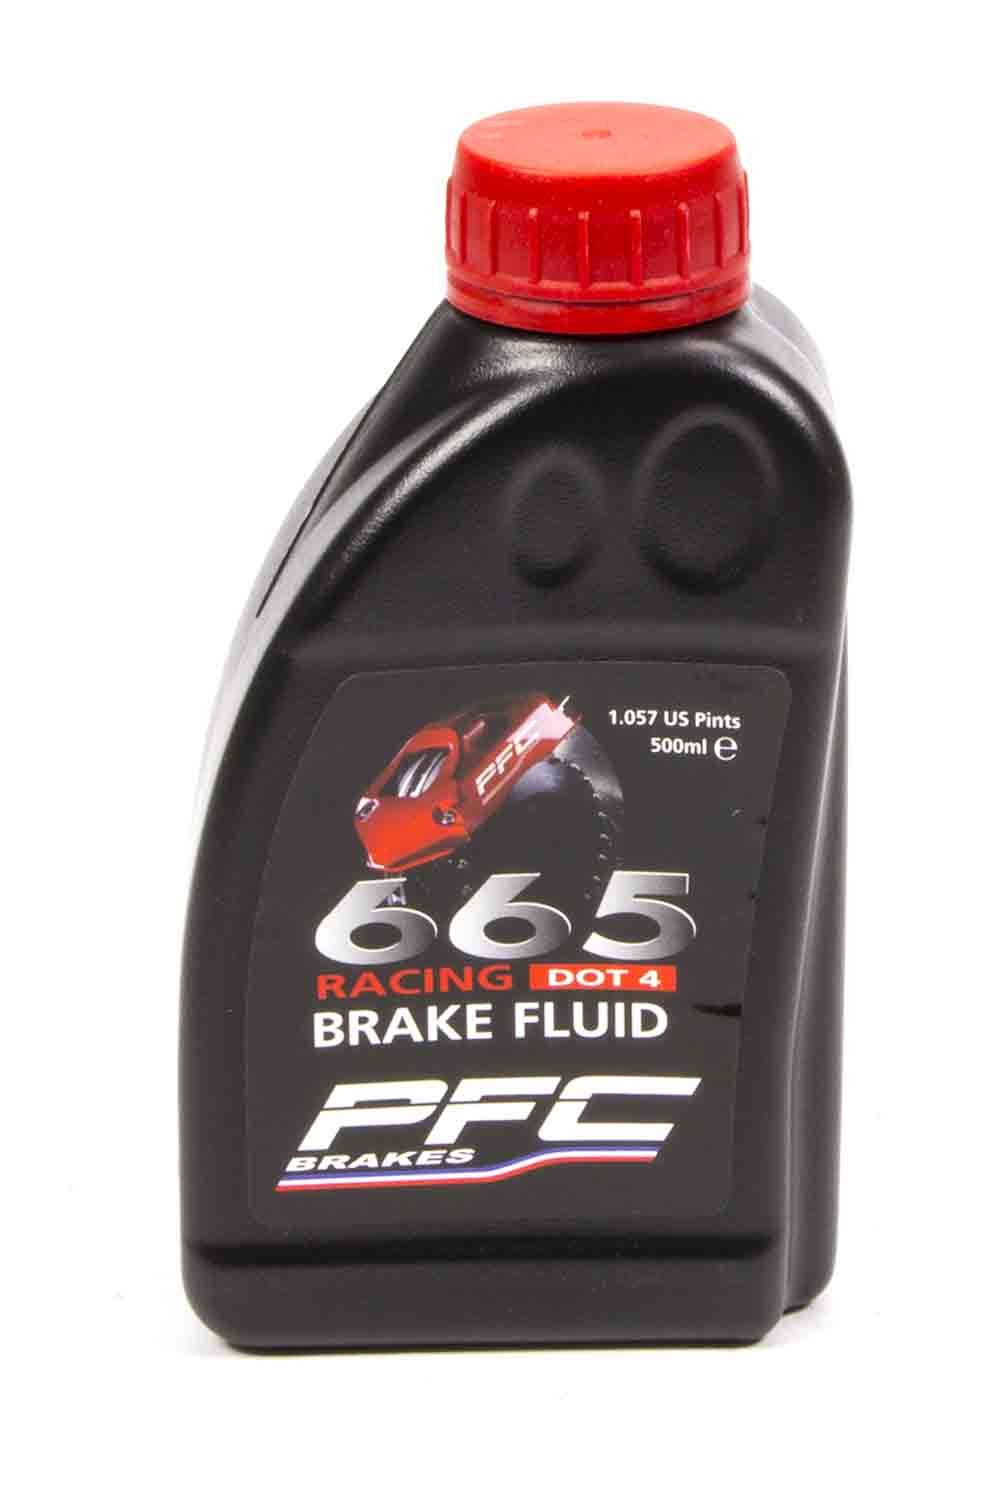 Performance Friction 25-0037 Brake Fluid, RH665, DOT 4, 500 ml, Each